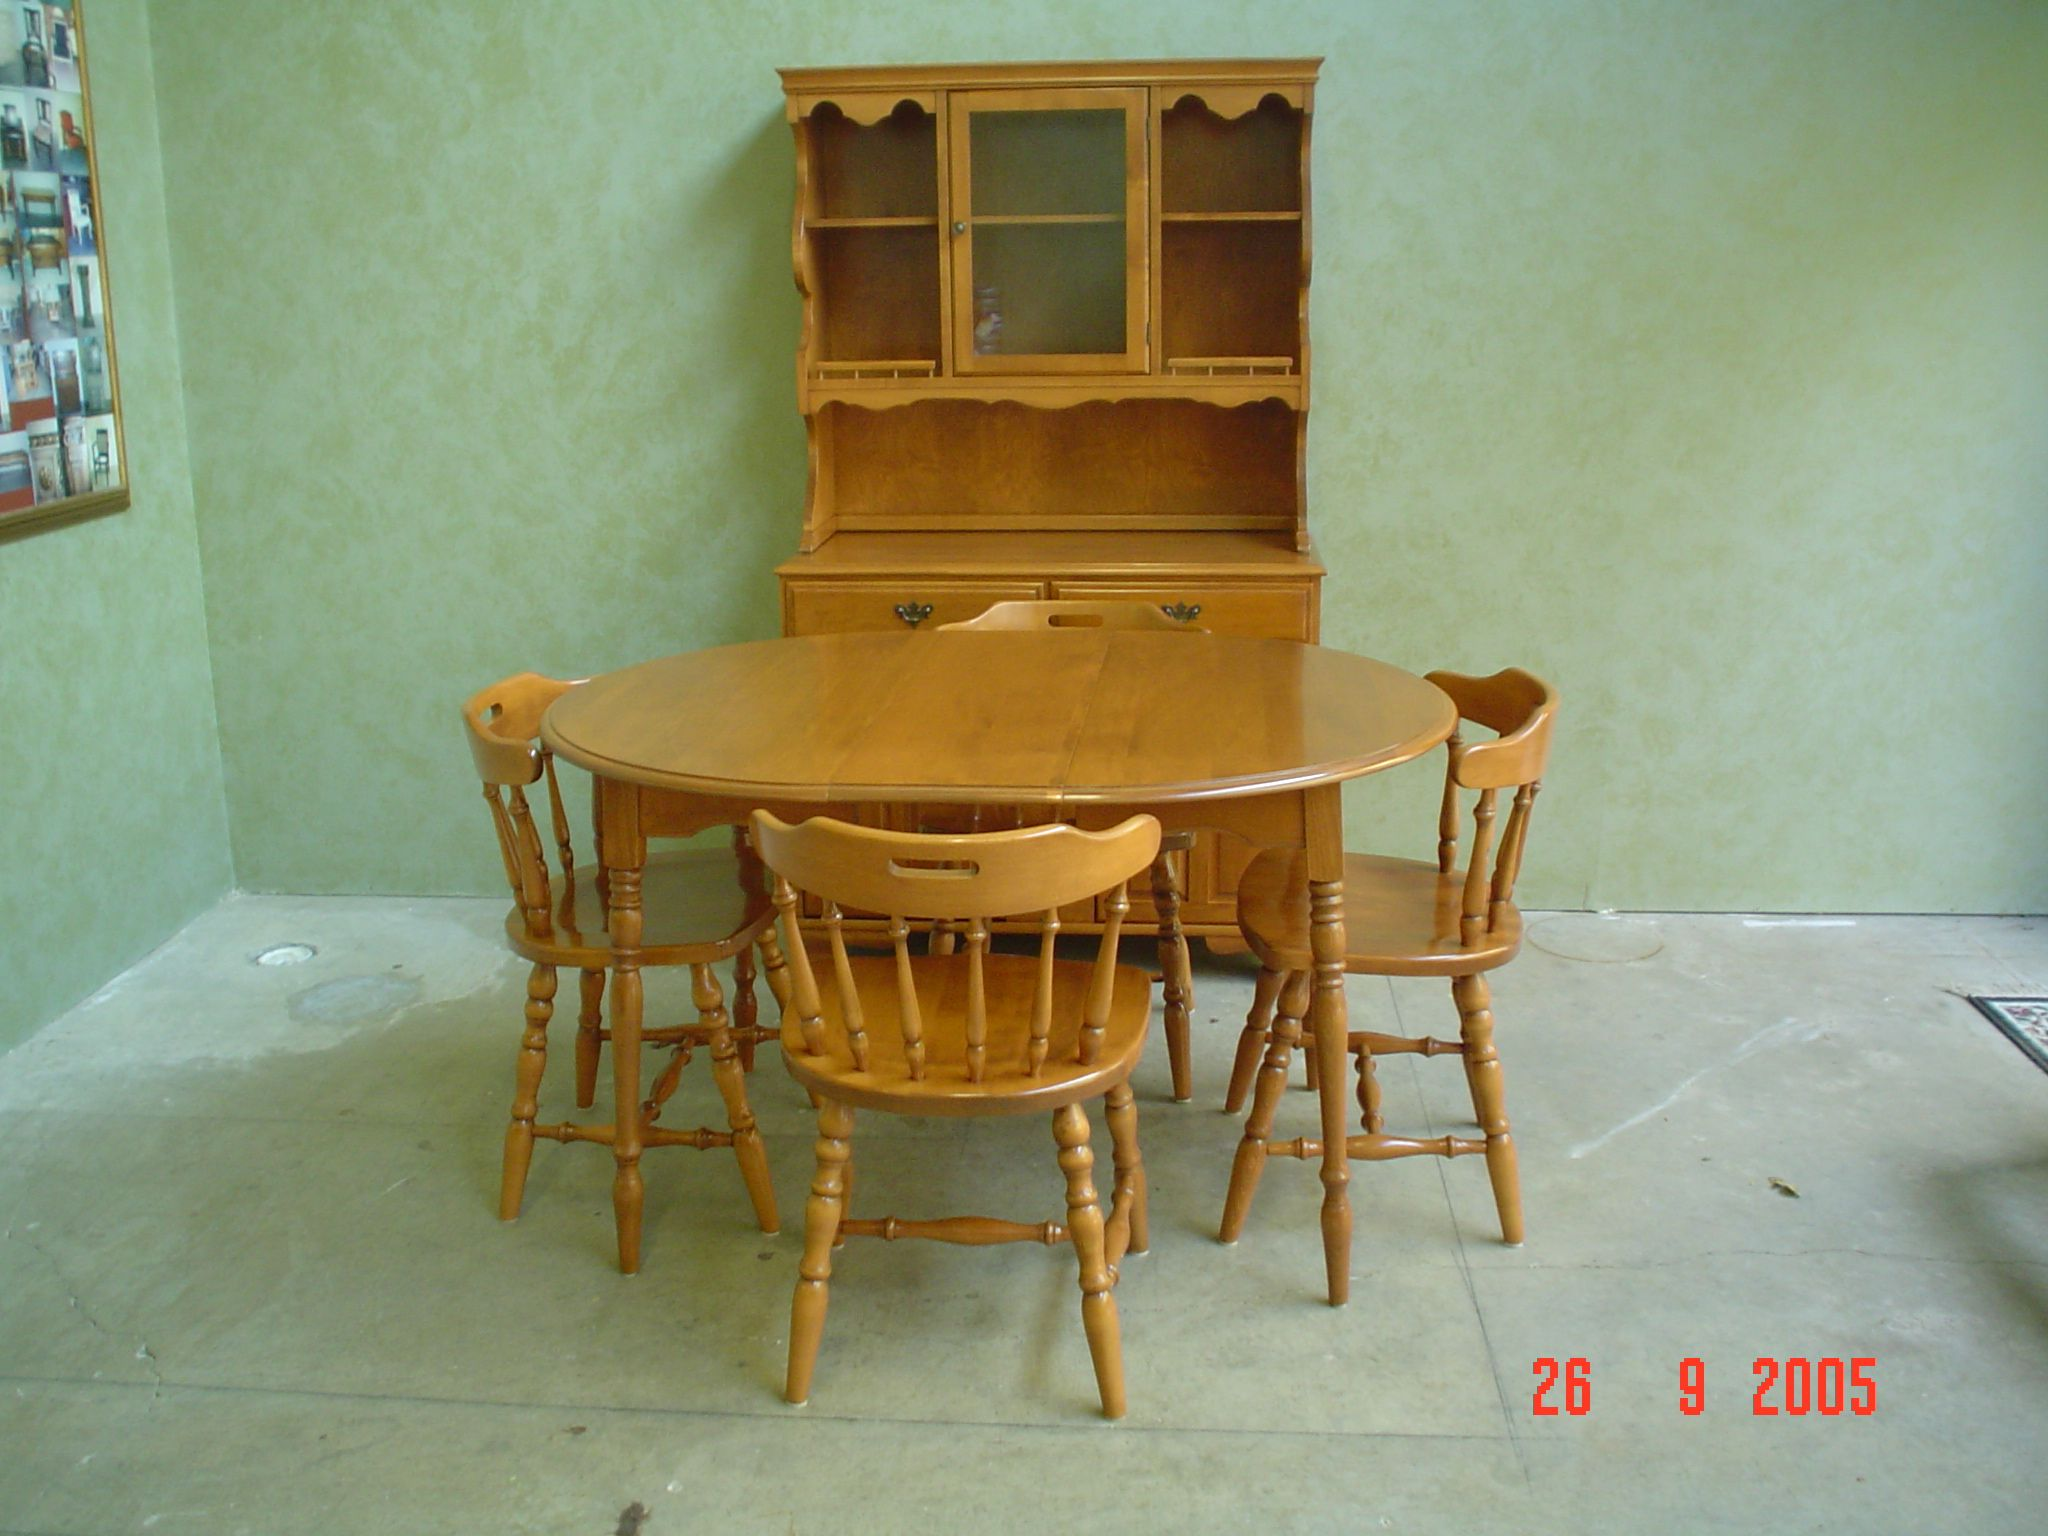 Dining suite refinished by AM Furniture Finishing